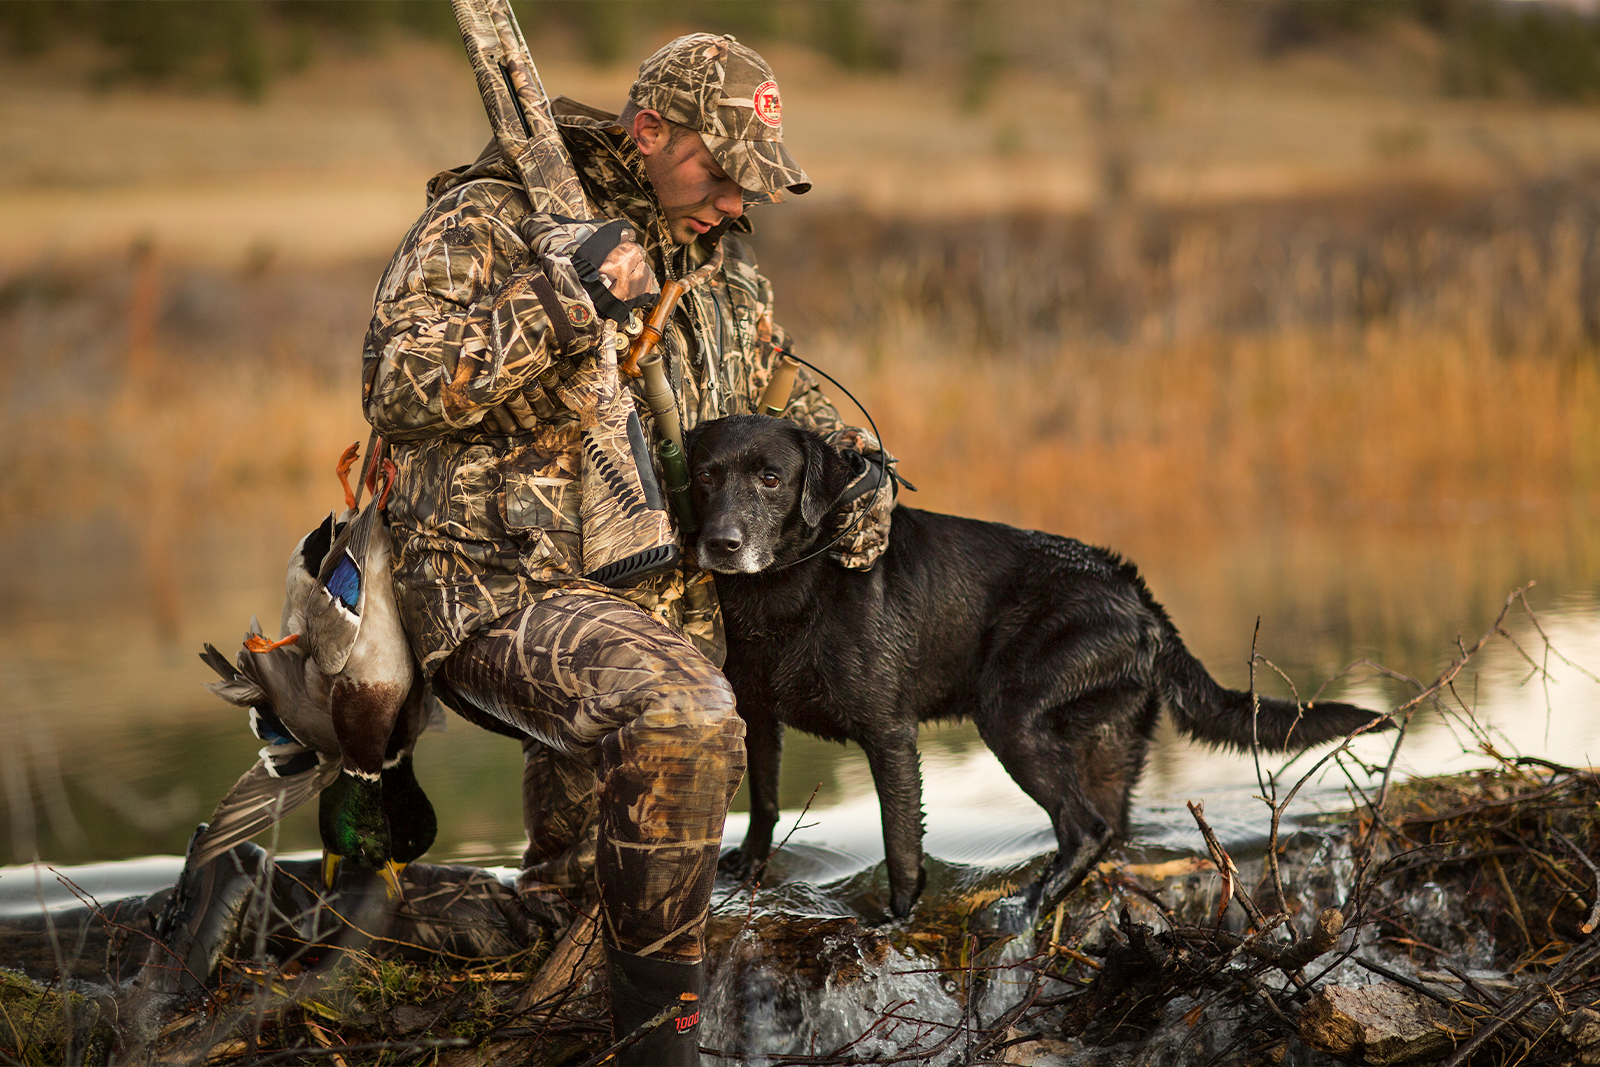 Garmin offers sporting dog solutions including dog bark collars, and dog trackers with GPS.